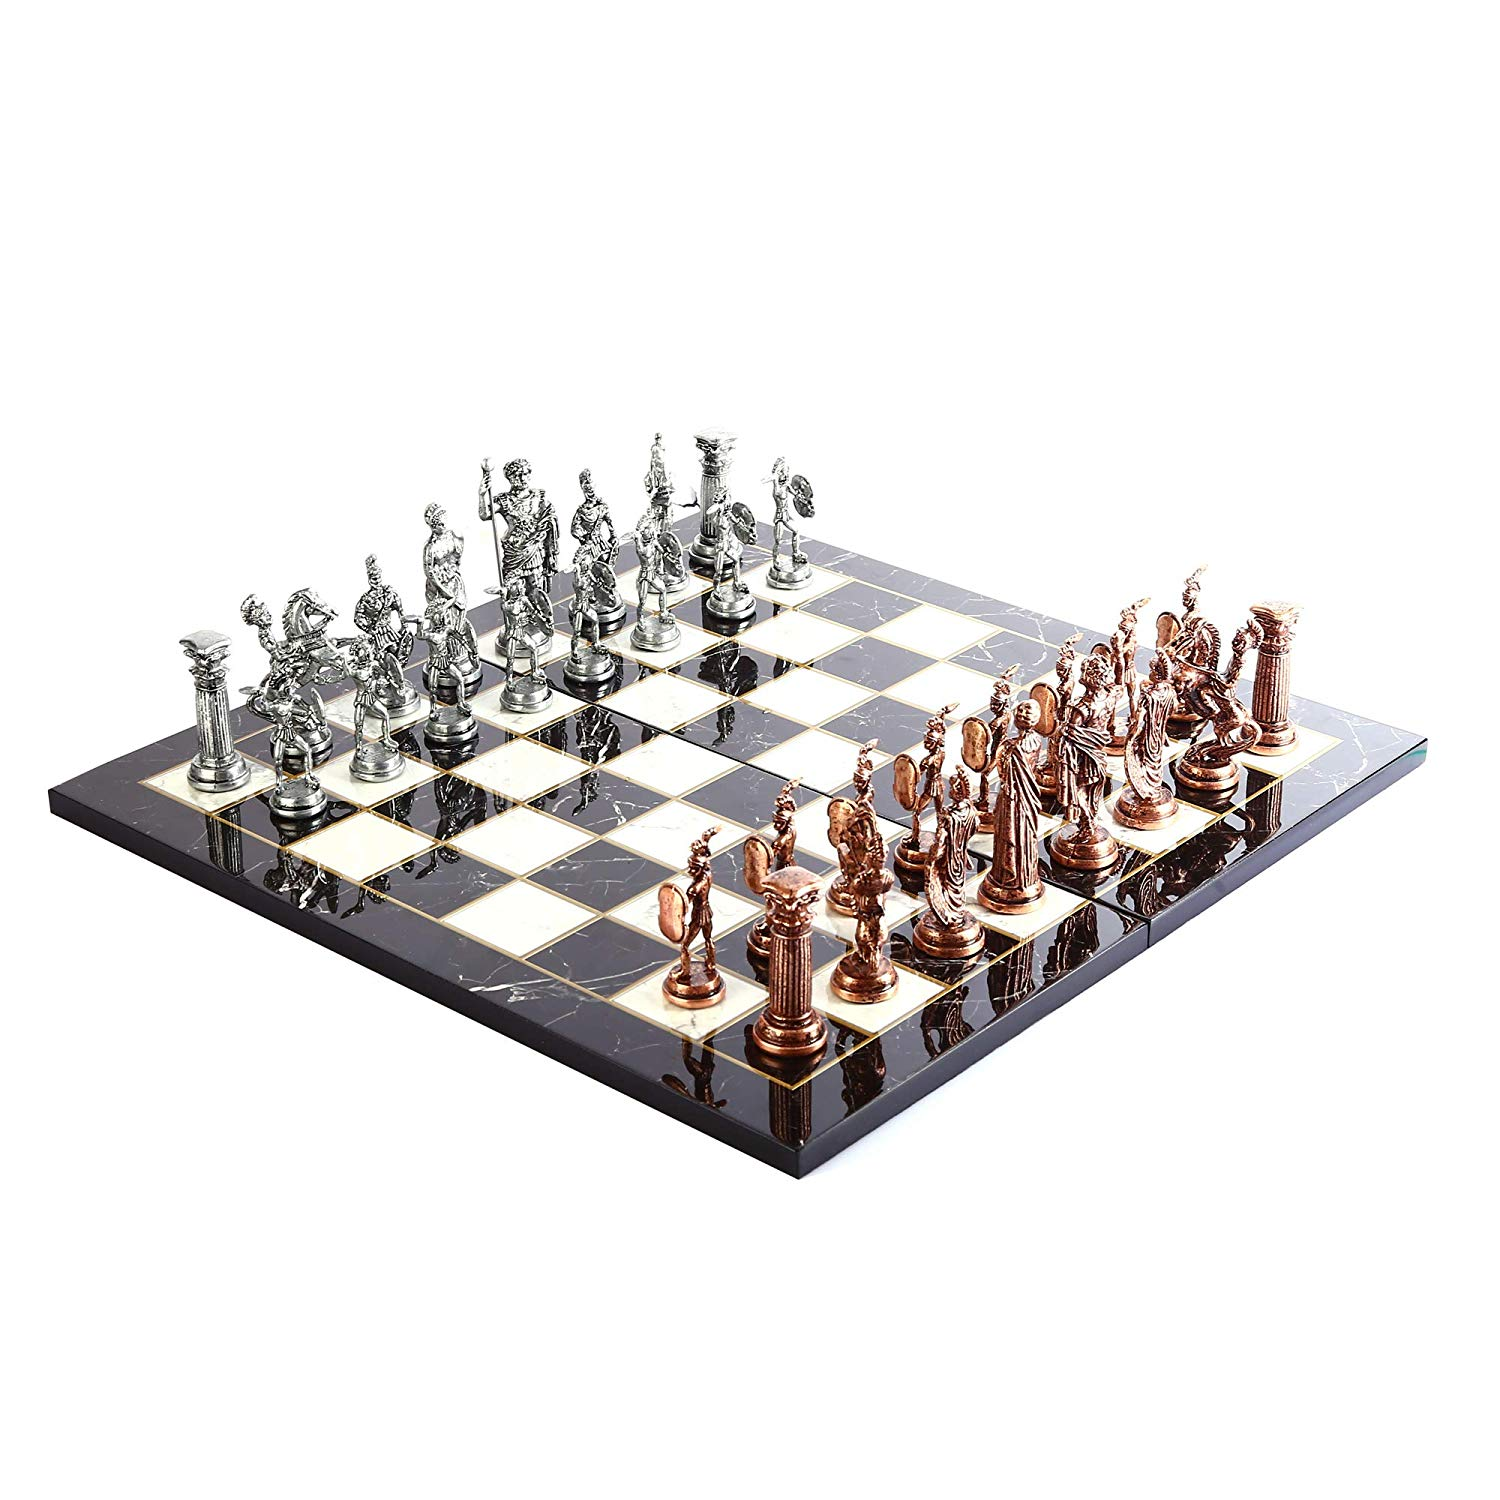 Historical Antique Copper Rome Figures Metal Chess Set for Adult,Handmade Pieces and Marble Design Wood Chess Board King 11 cm 1